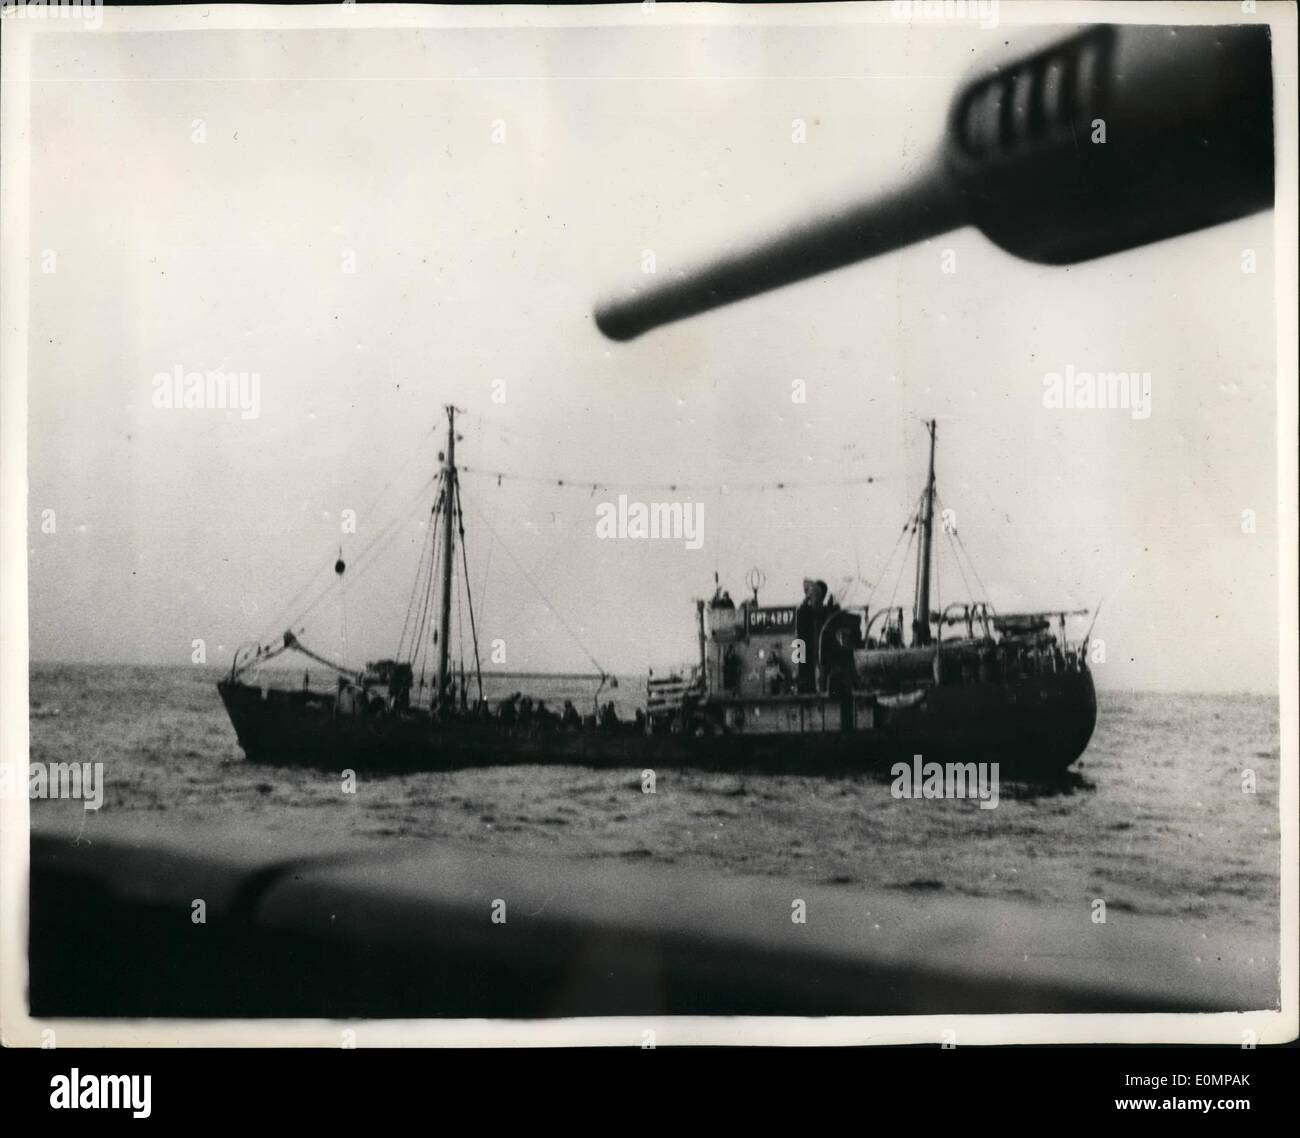 Feb. 02, 1956 - Norwegian Navy Holds Soviet Fishing Trawlers, Poaching in Territorial Waters. M.T.B's and other vessels of the Norwegian Navy have seized four Russian fishing trawlers and a 10,000 ton depot ship said to have been poaching in Norway's territorial waters. Norwegian sailors had to fire warning shots with rifles and revolvers to force the trawlers to heave it. Keystone Photo shows: One of the Soviet Fishing Trawlers after it had been arrested by Norwegian M.T.B's. - Stock Image